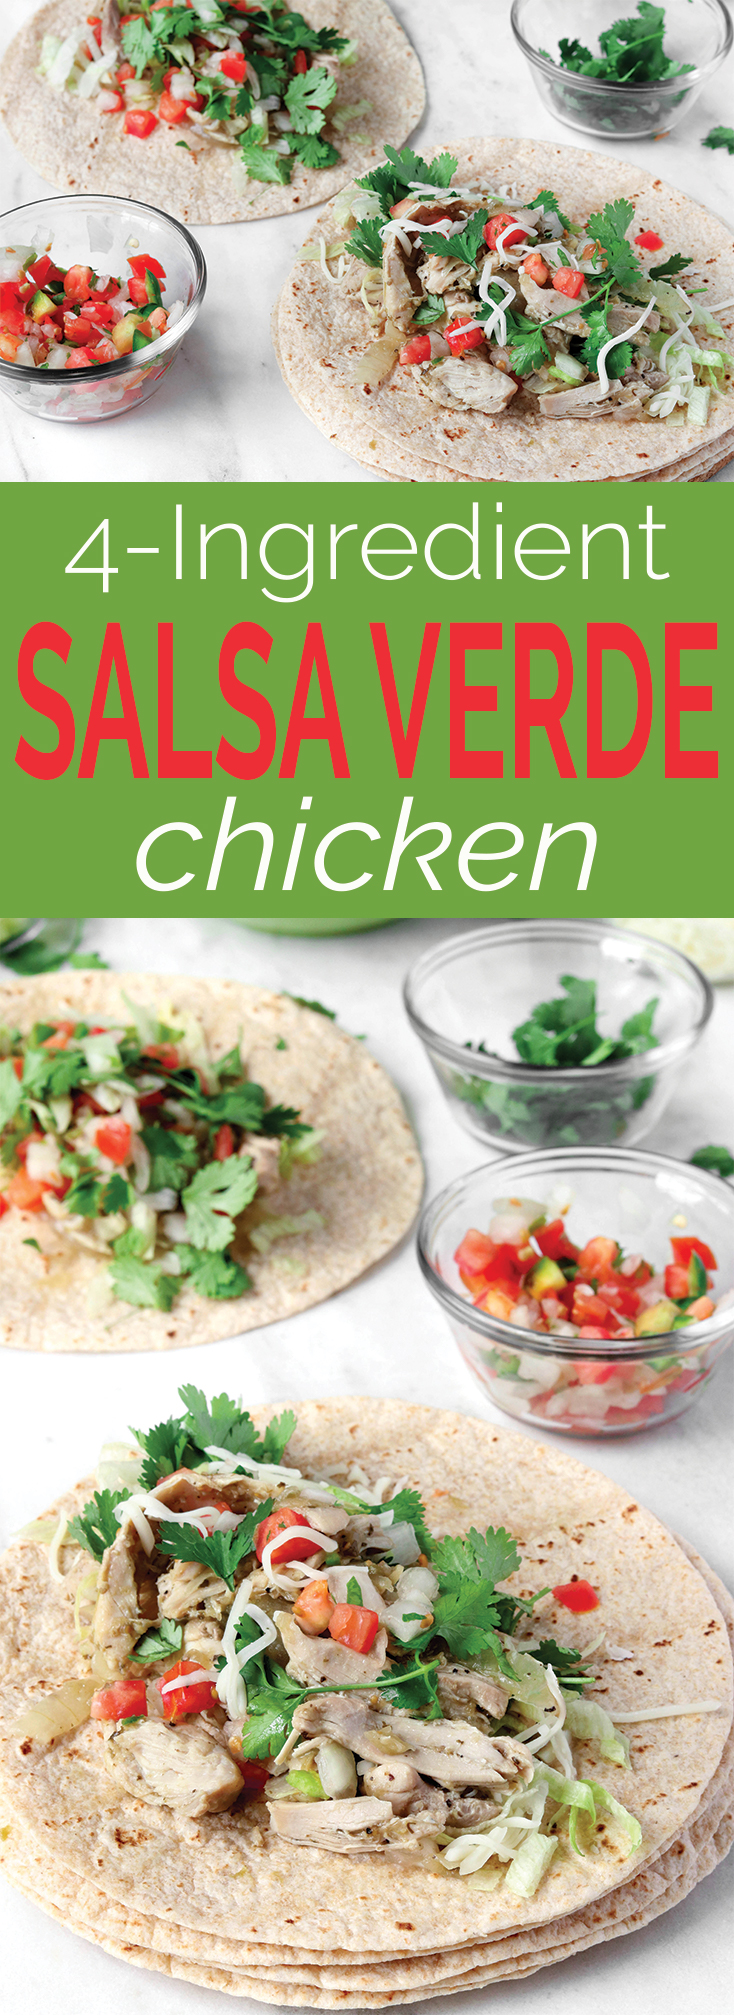 Easy, 4 Ingredient Salsa Verde Chicken Tacos with whole wheat tortillas, shredded cheddar, and spicy pico are healthy, filling and couldn't be simpler to throw together.